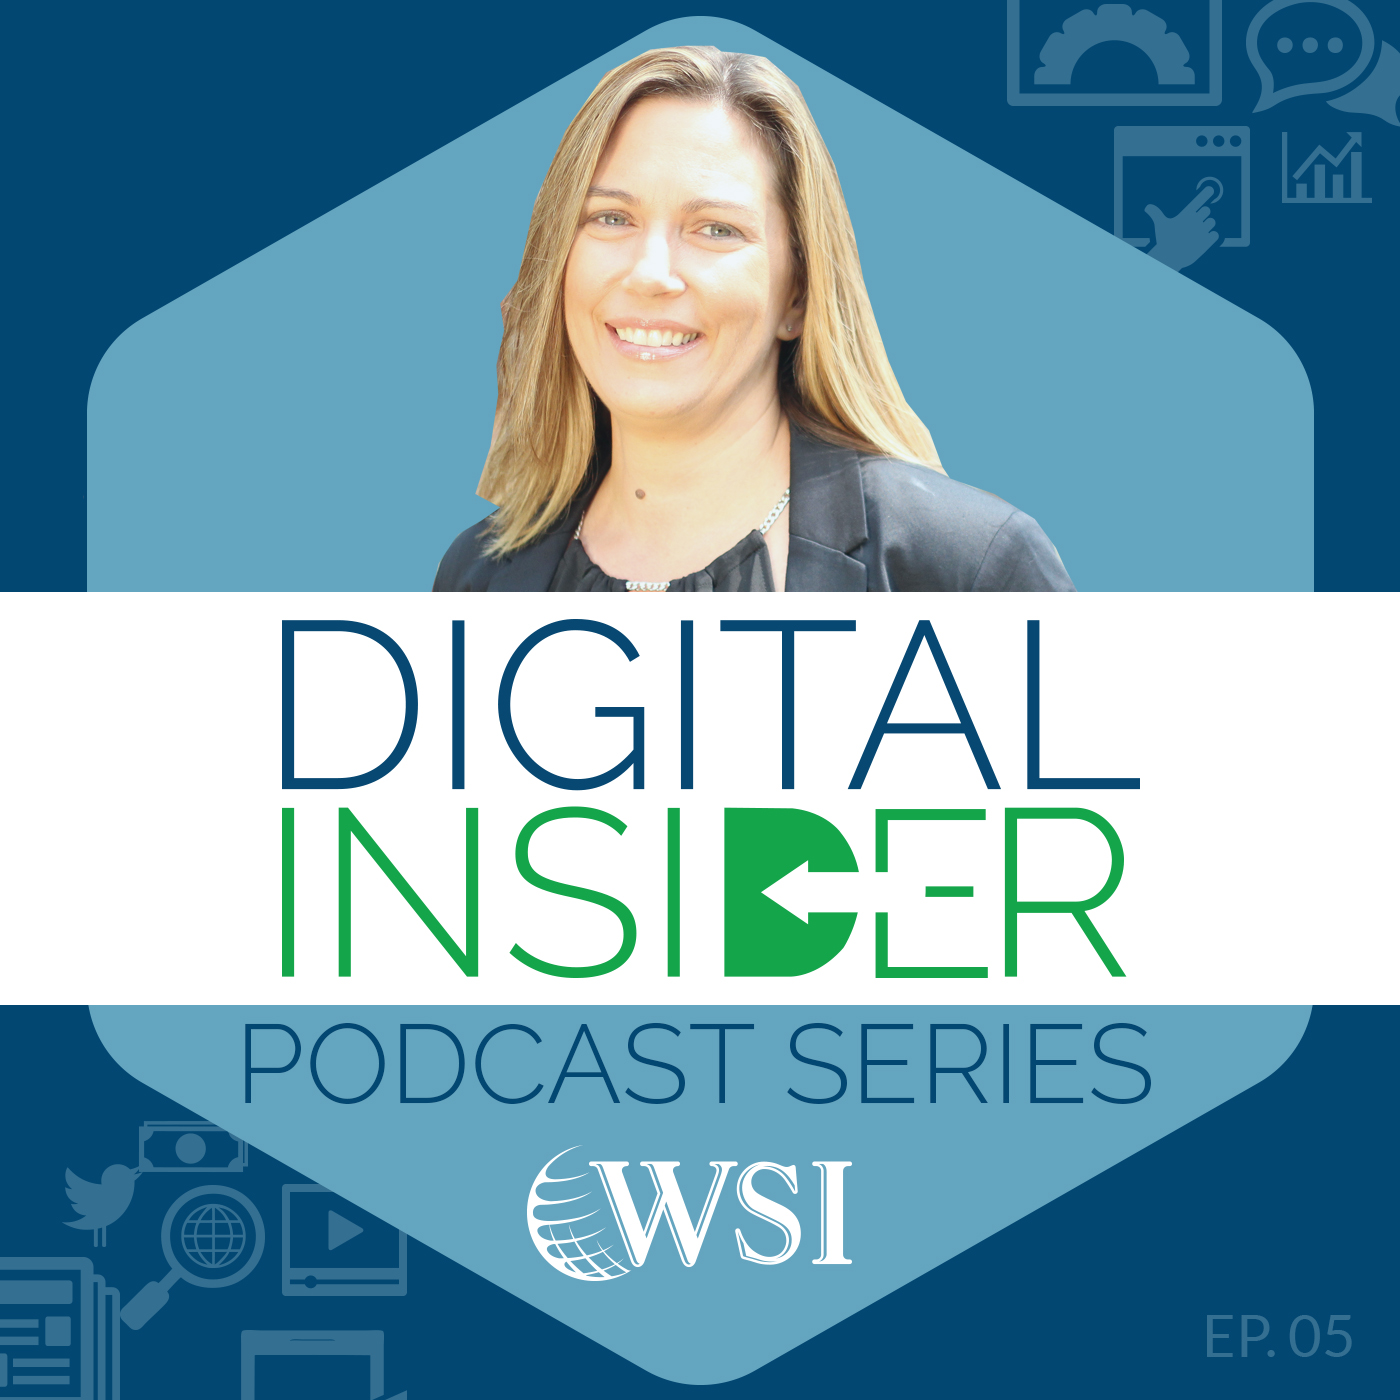 Episode 5: Brand Loyalty with Tammara Kennelly